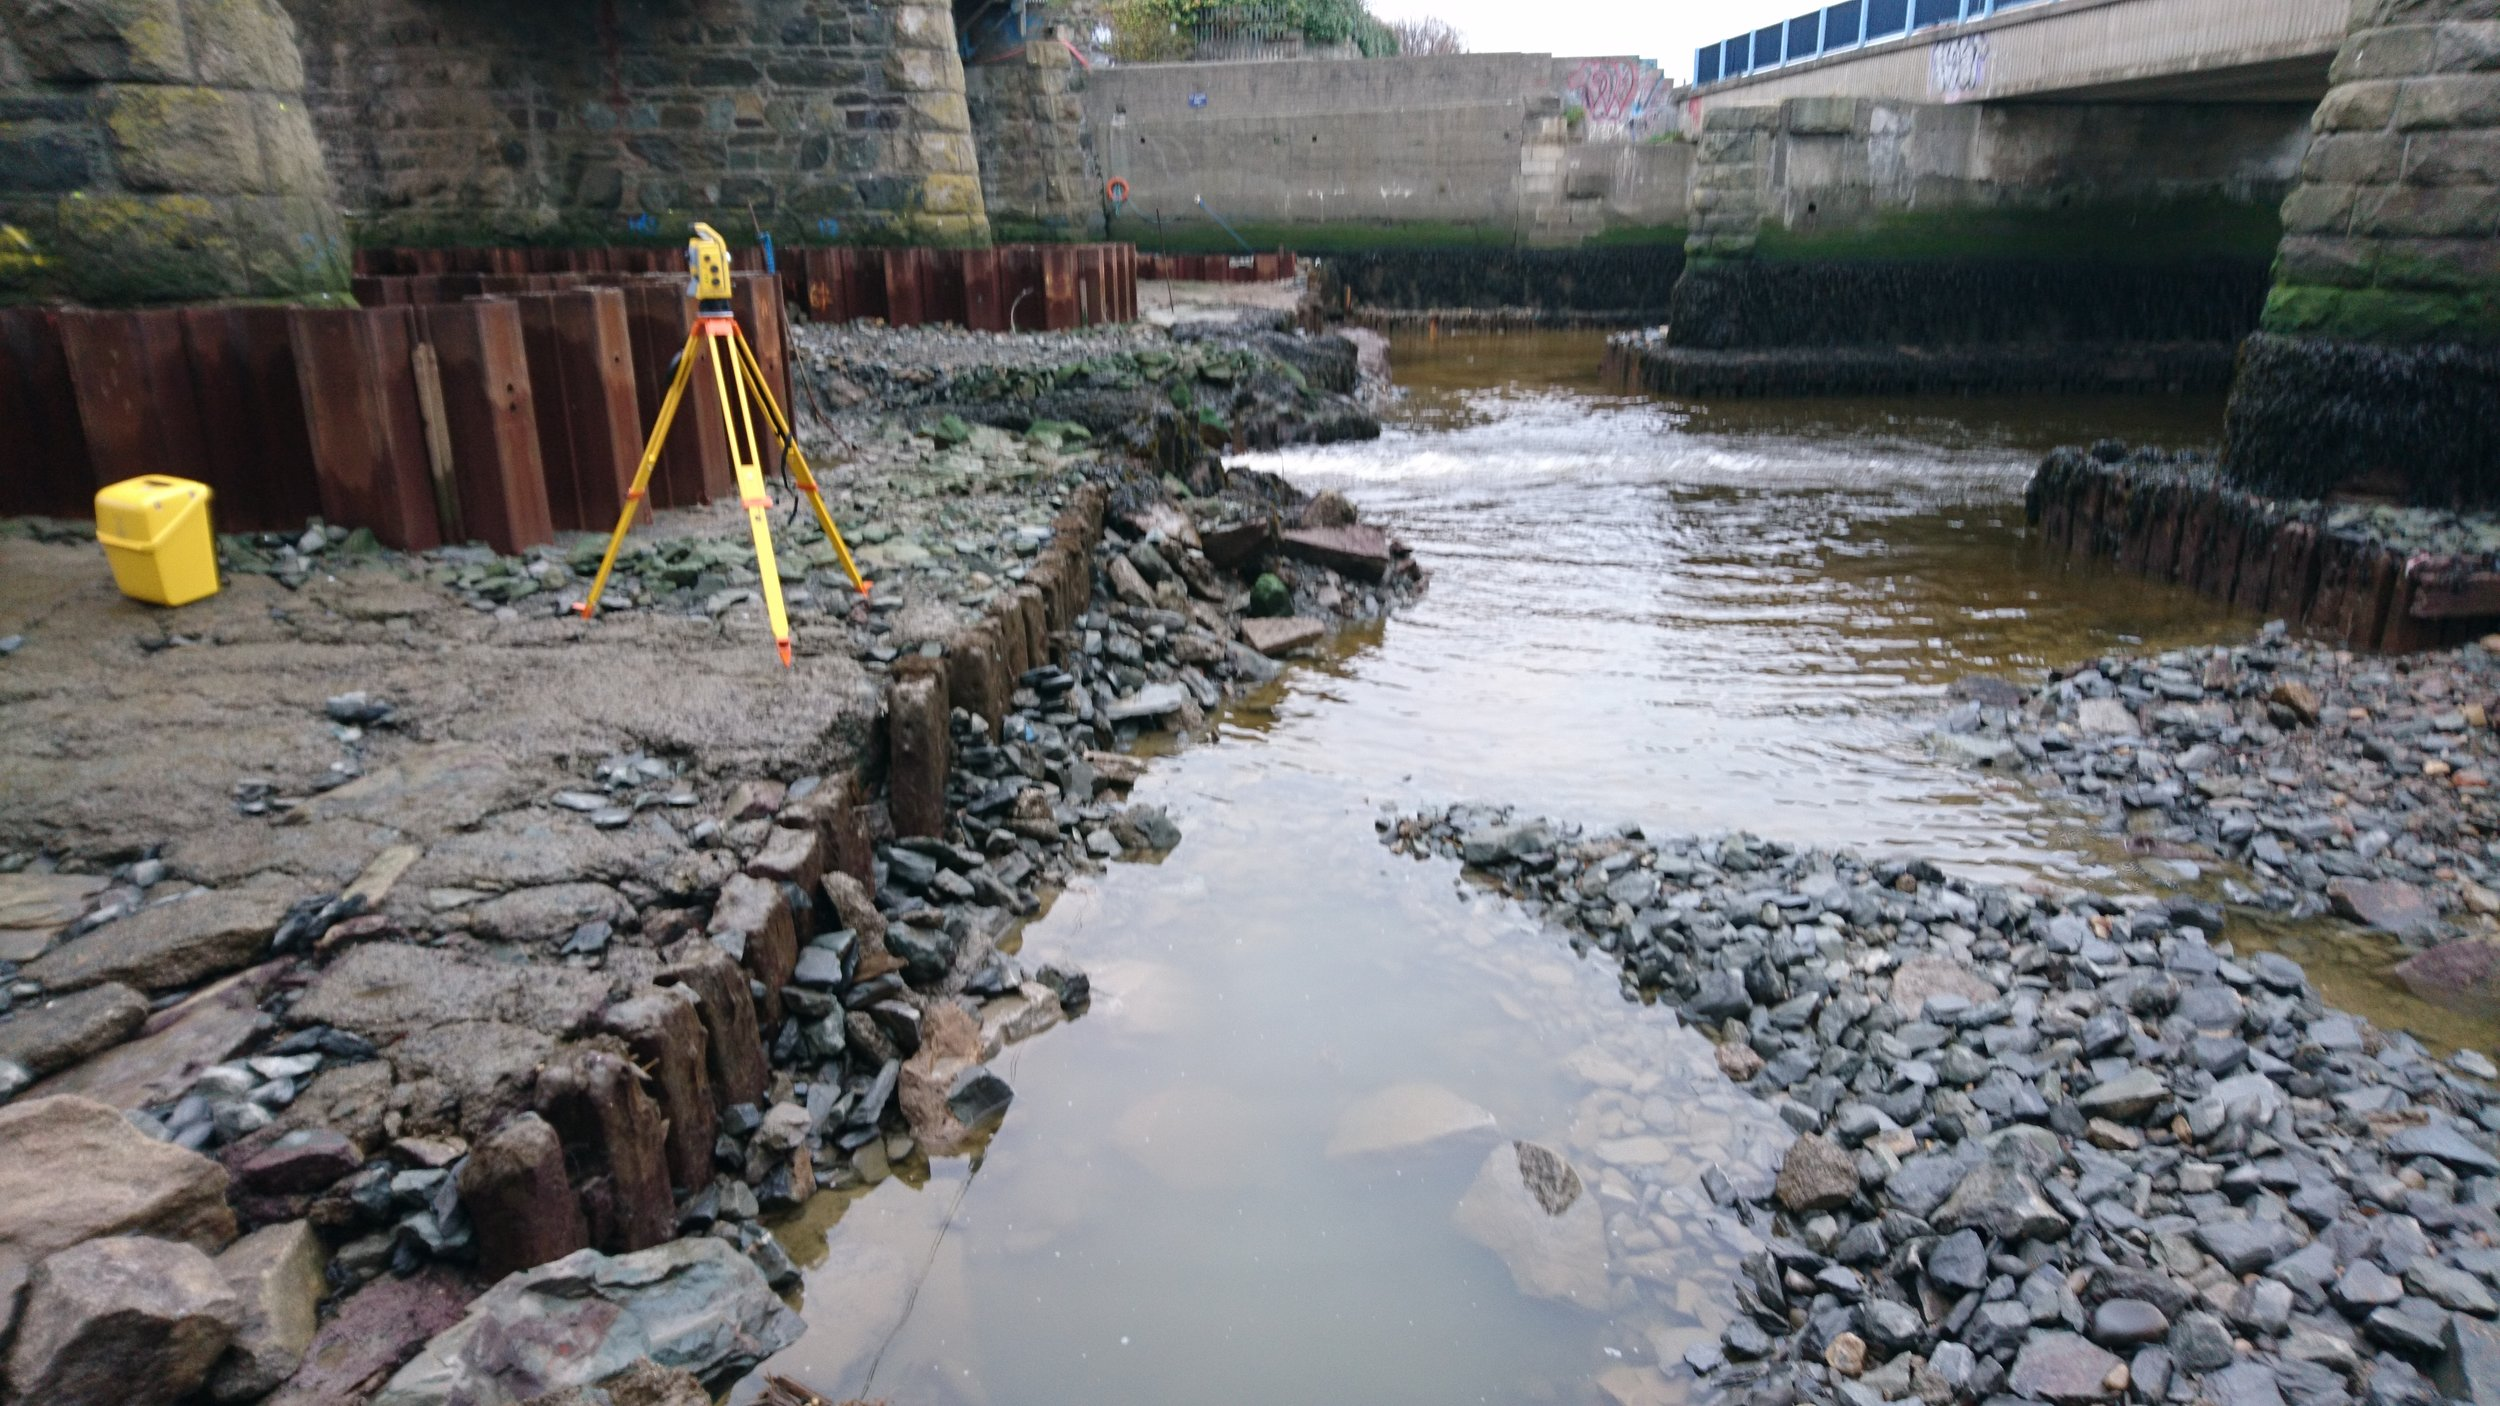 HHS recently undertook a bridge scour survey to determine local scour levels and to facilitate scour prevention measures.